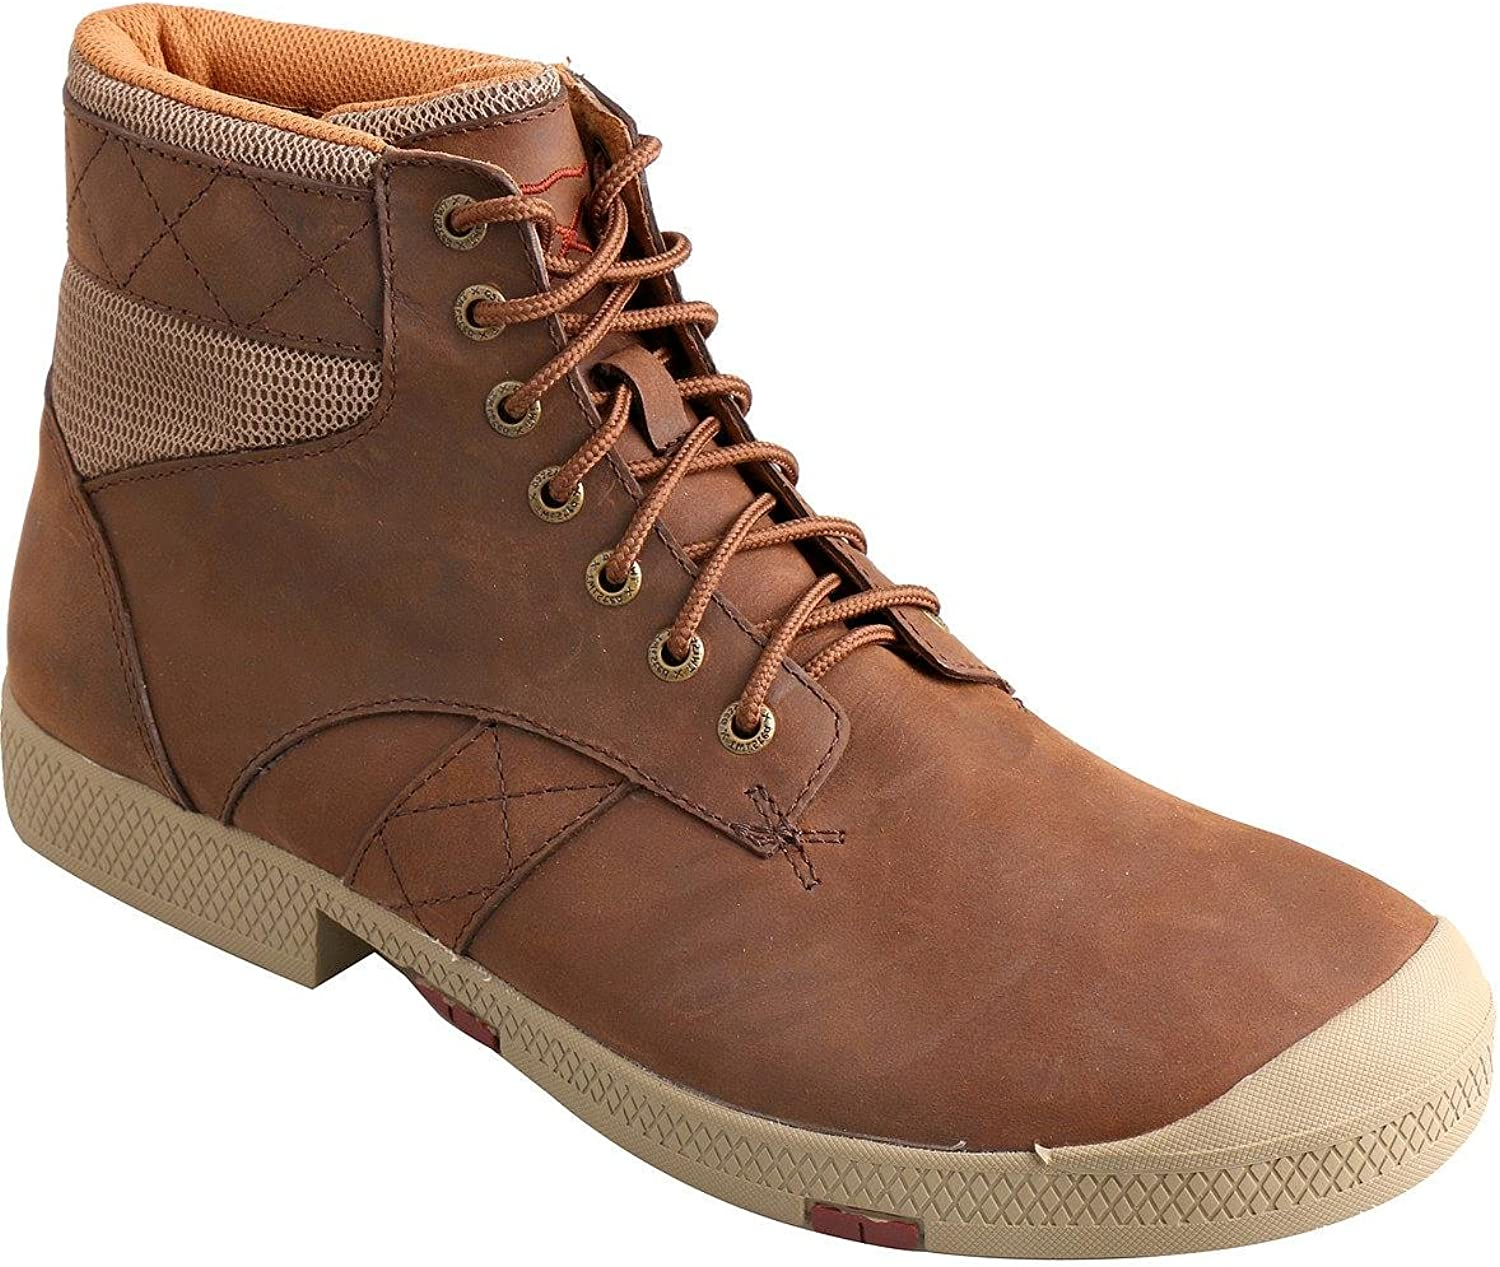 Twisted X Casual shoes Mens Lace Up Driving Moc Crazy Horse MCA0009